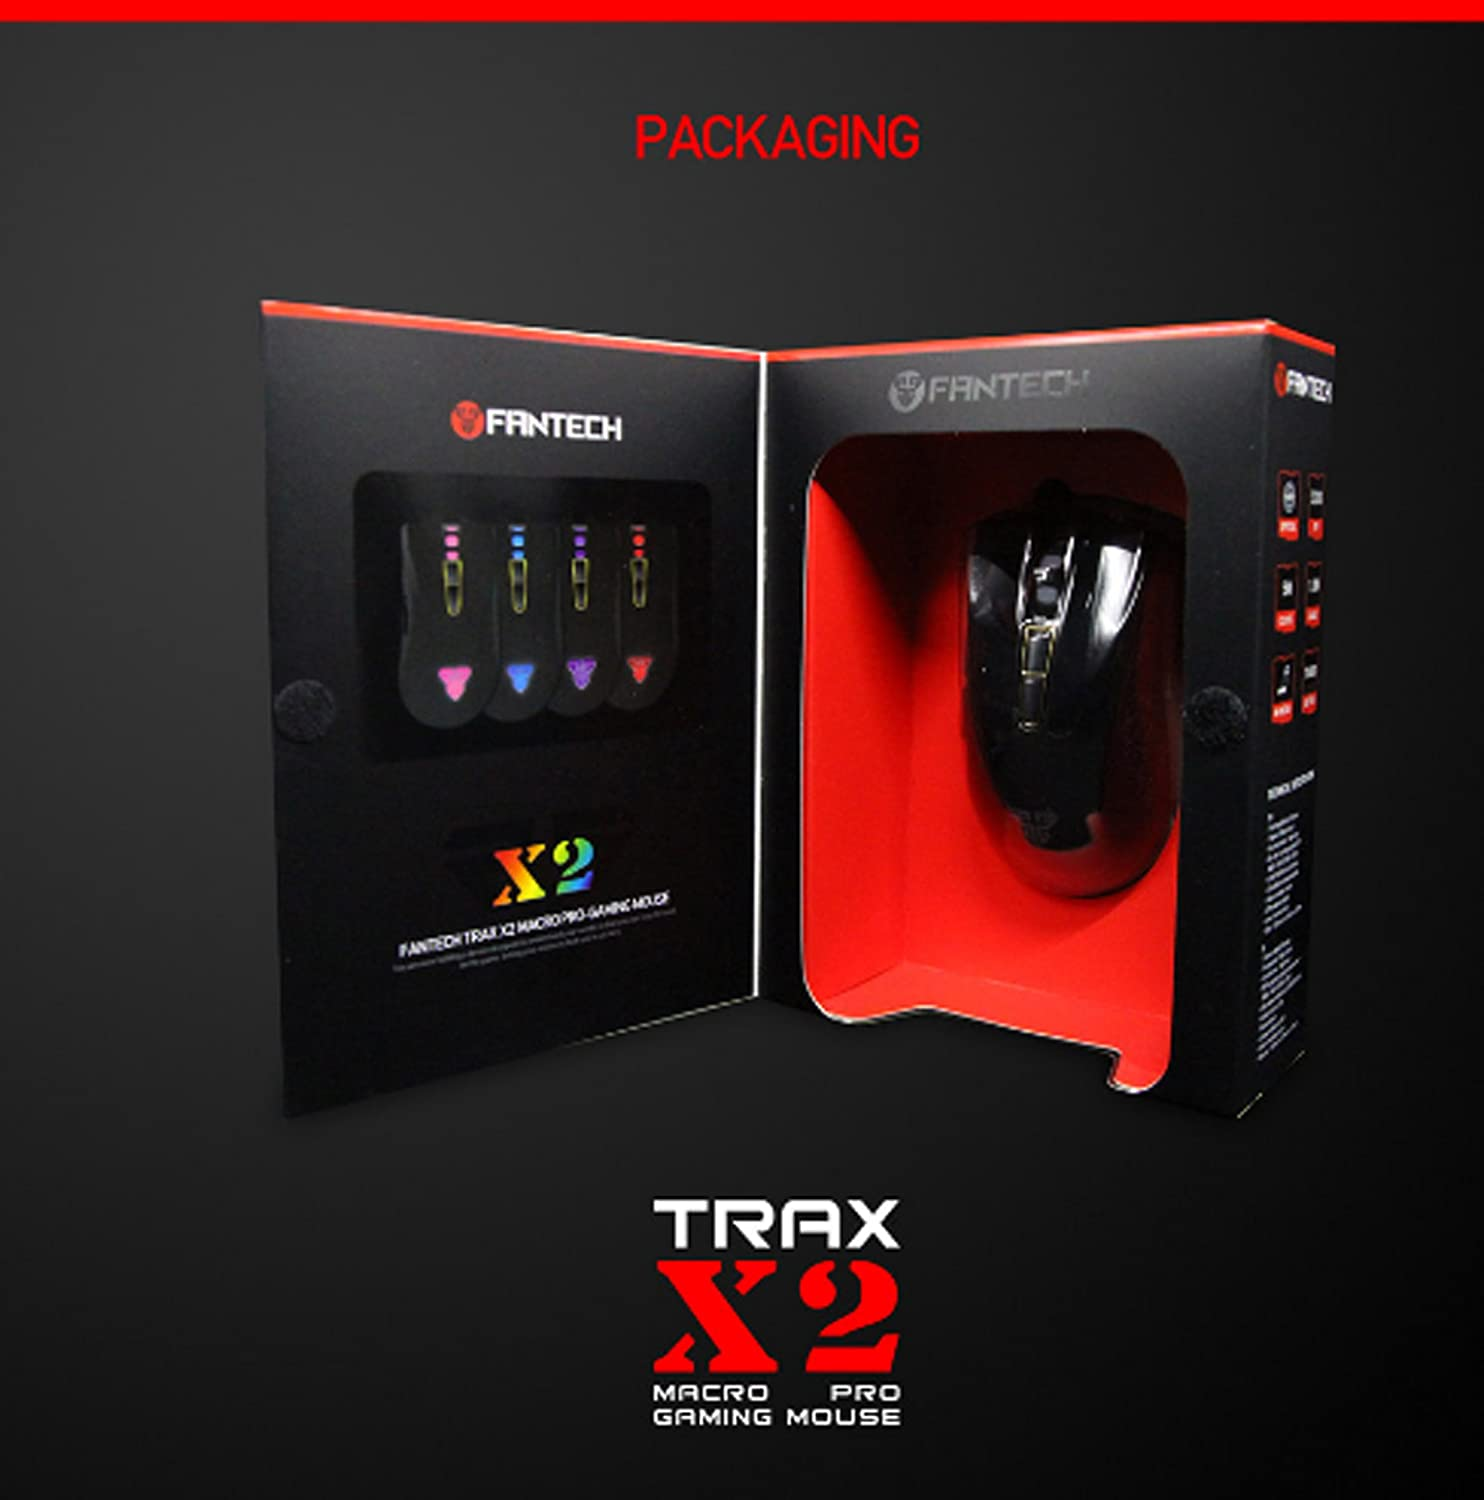 Amazon Buy Gaming Mouse X2 TRAX Fantech Premium Professional 7D Gaming Mouse with LED line at Low Prices in India